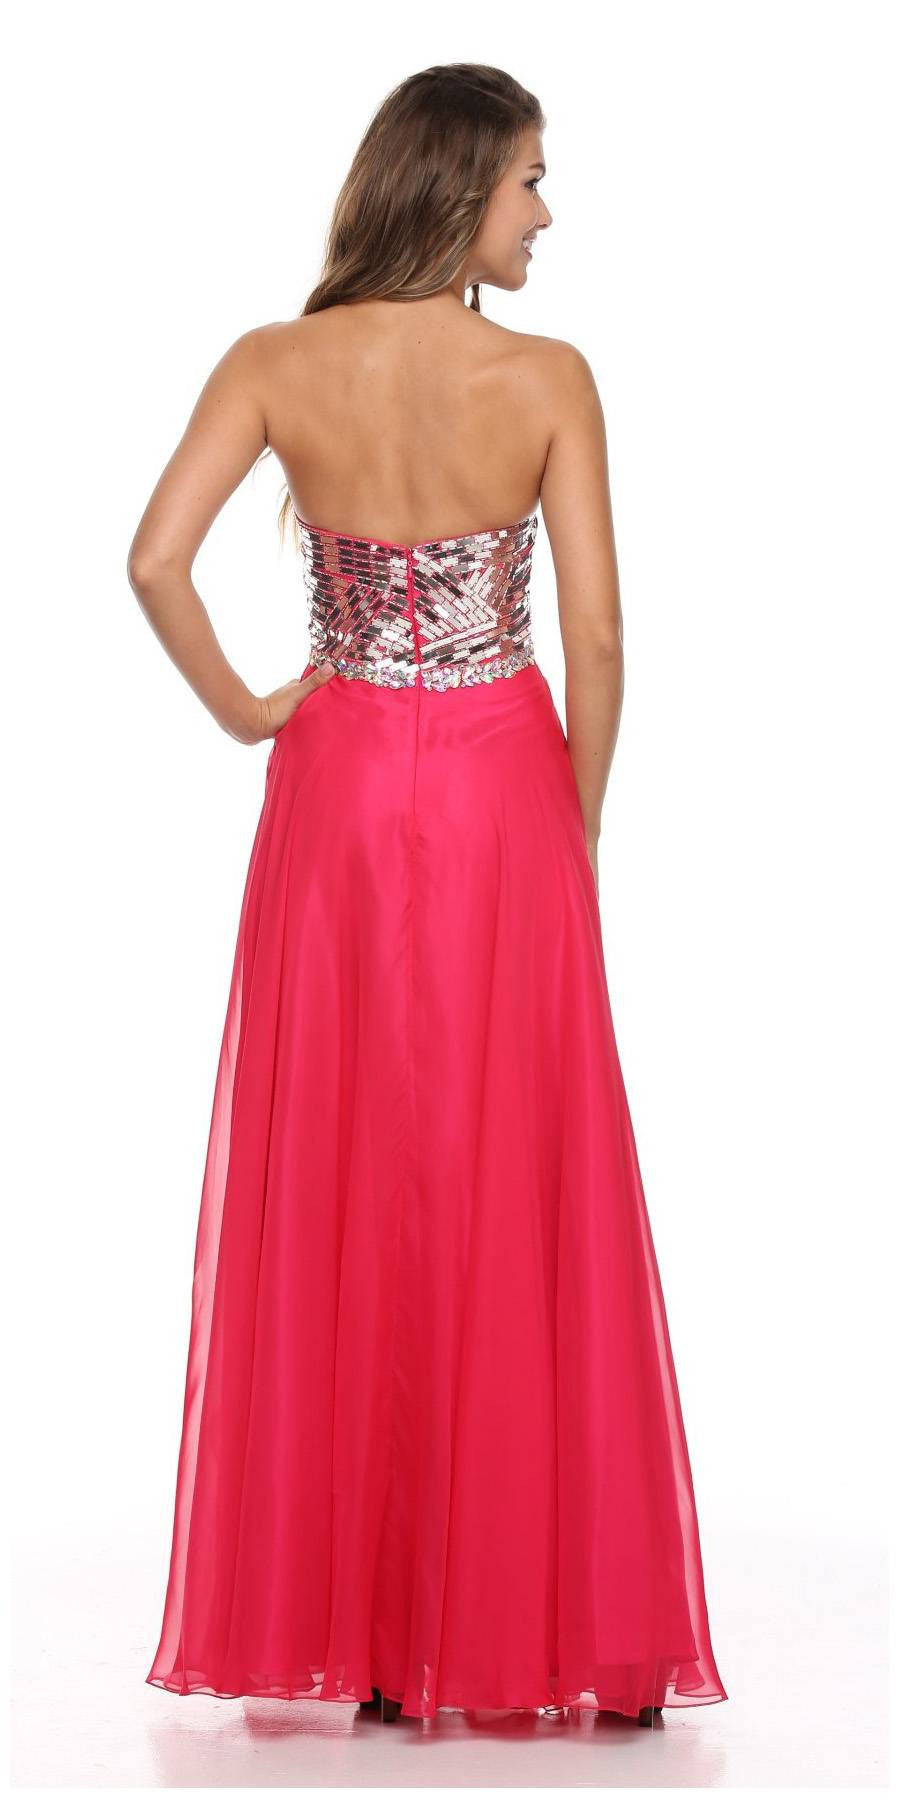 Floor Length A Line Strapless Layered Fuchsia Prom Dress